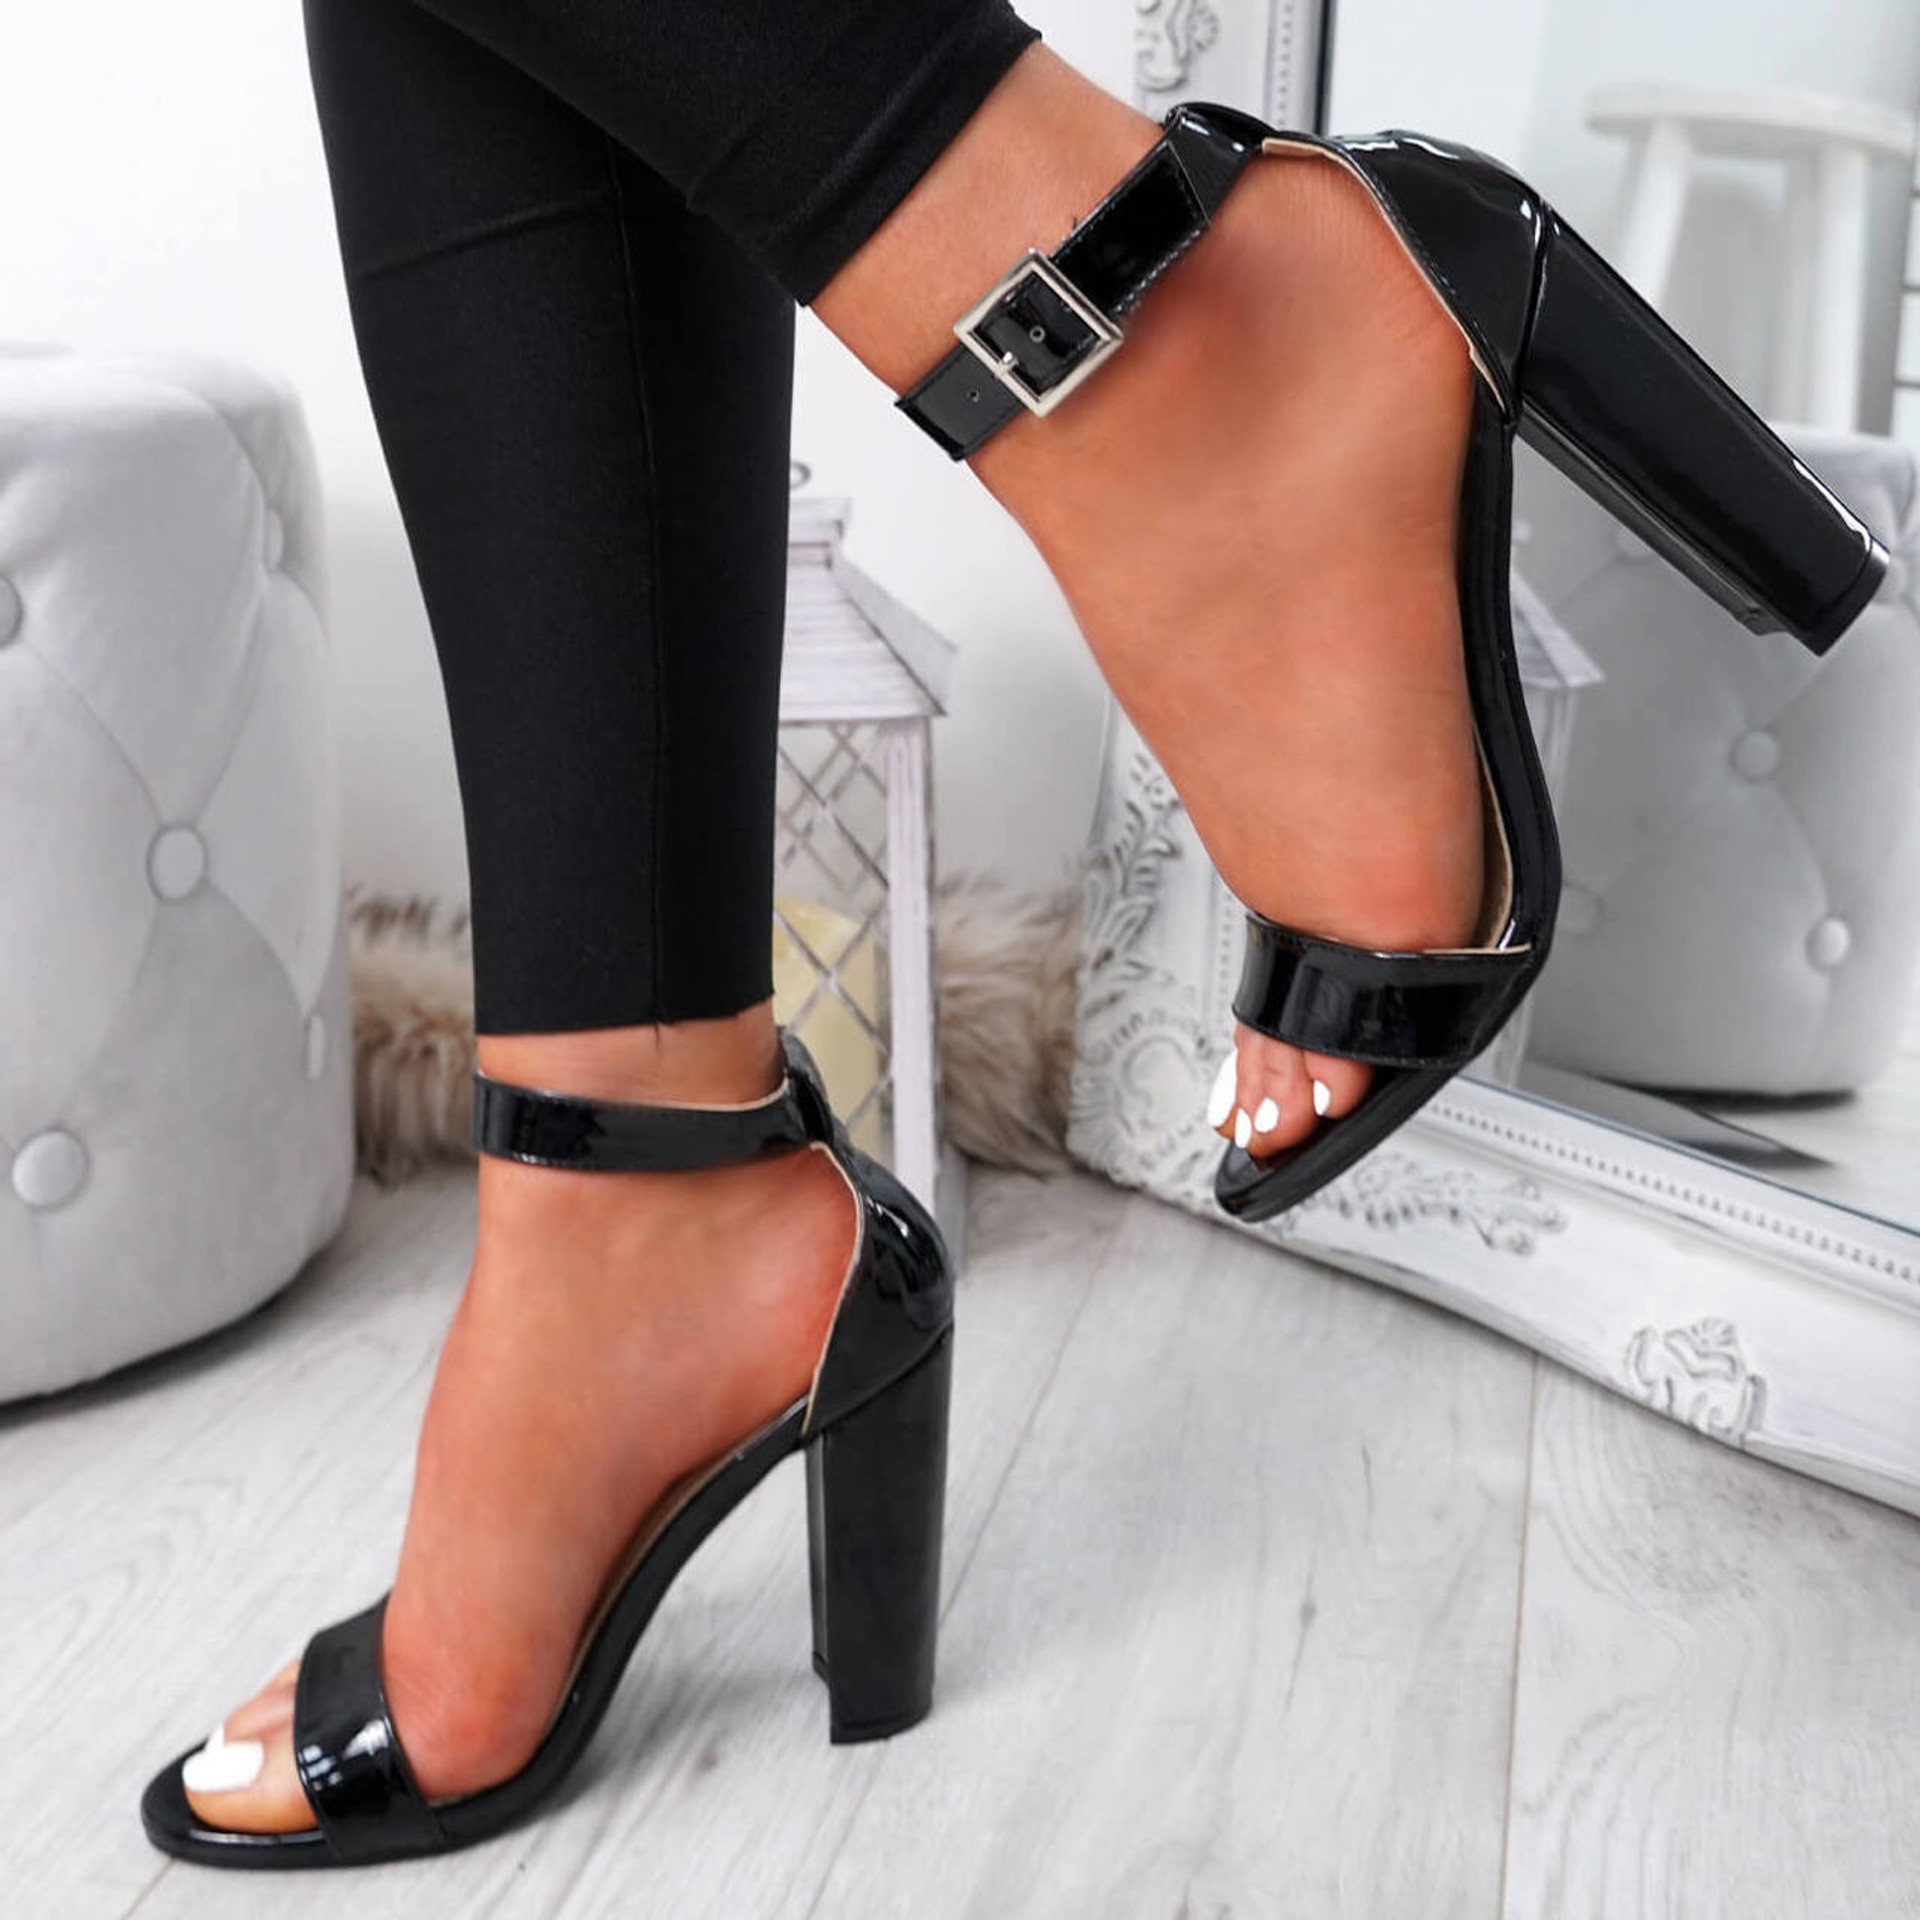 womens black ankle strap patent sandals size uk 3 4 5 6 7 8